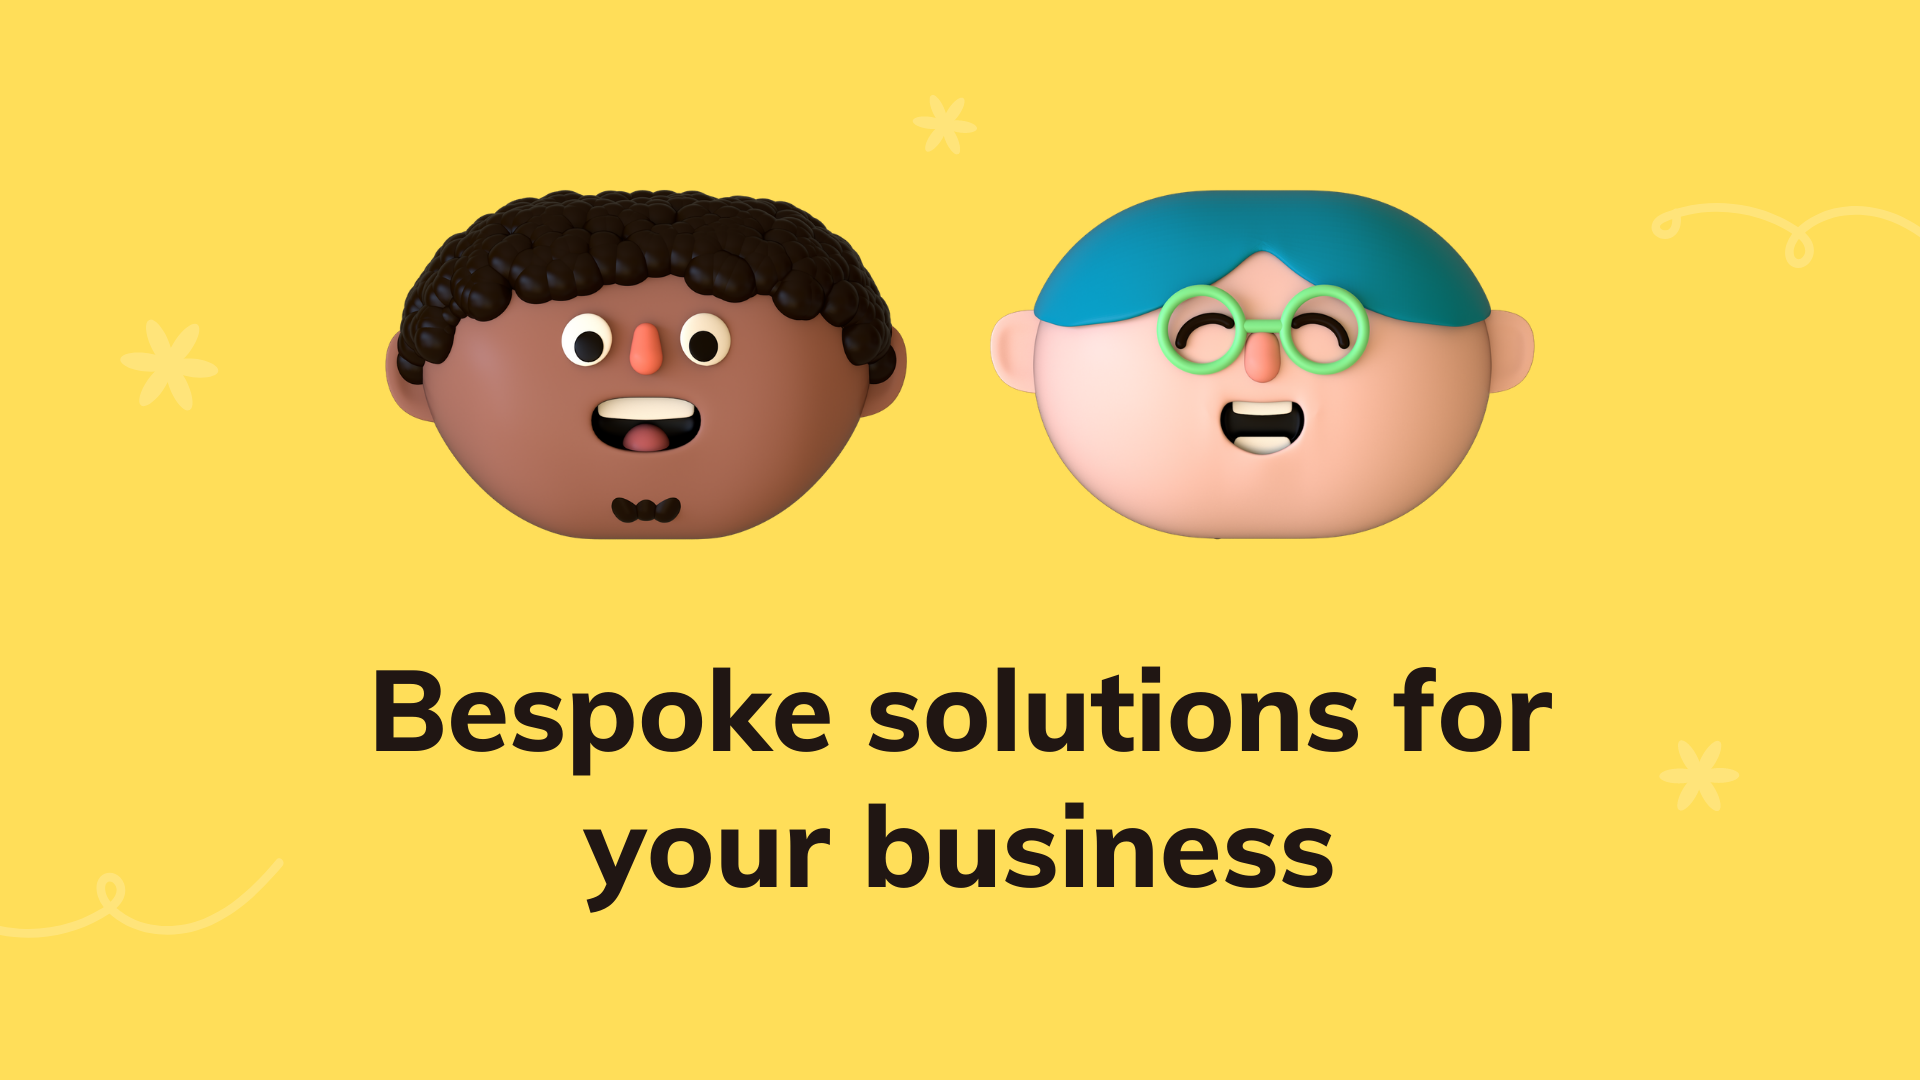 Bespoke solutions for your business